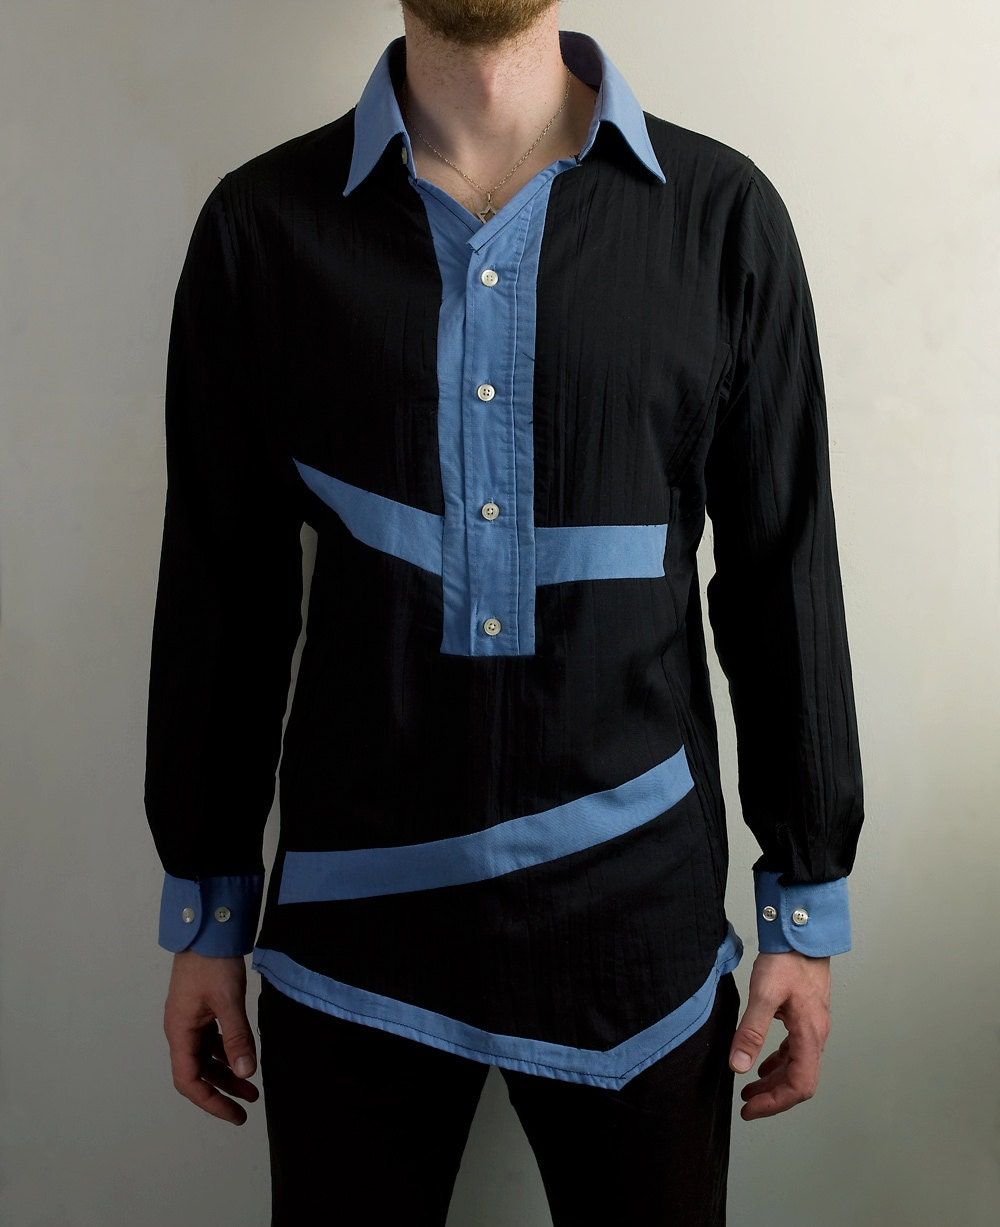 Untucked shirts deals on 1001 blocks for Casual button down shirts untucked